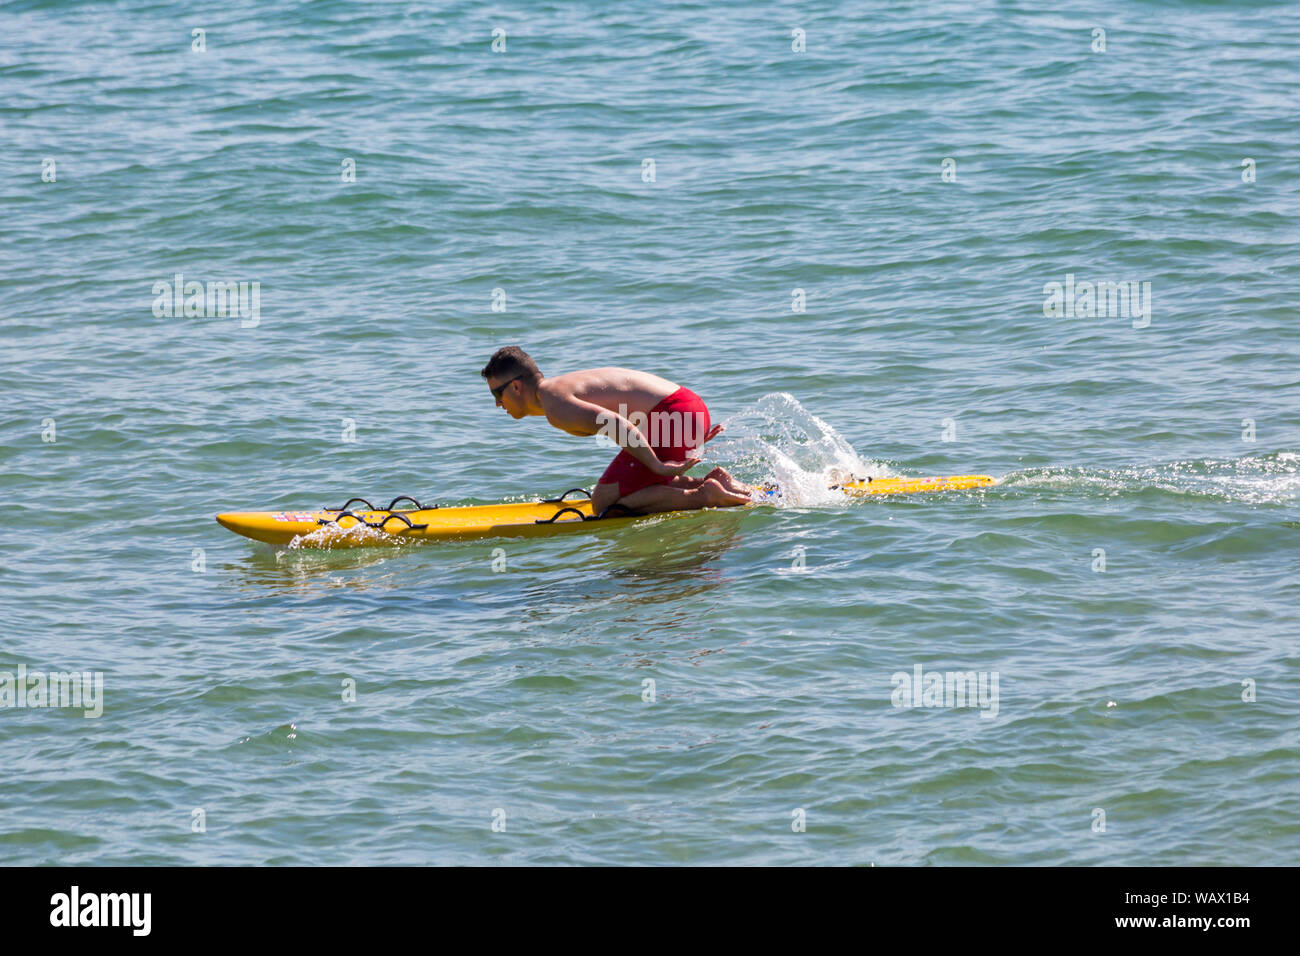 Bournemouth, Dorset UK. 22nd Aug 2019. UK weather: a lovely warm sunny day as beachgoers head to the seaside at Bournemouth beaches to enjoy the sunshine, as temperatures are set to get higher for the Bank Holiday weekend. RNLI Lifeguard on surf board. Credit: Carolyn Jenkins/Alamy Live News Stock Photo